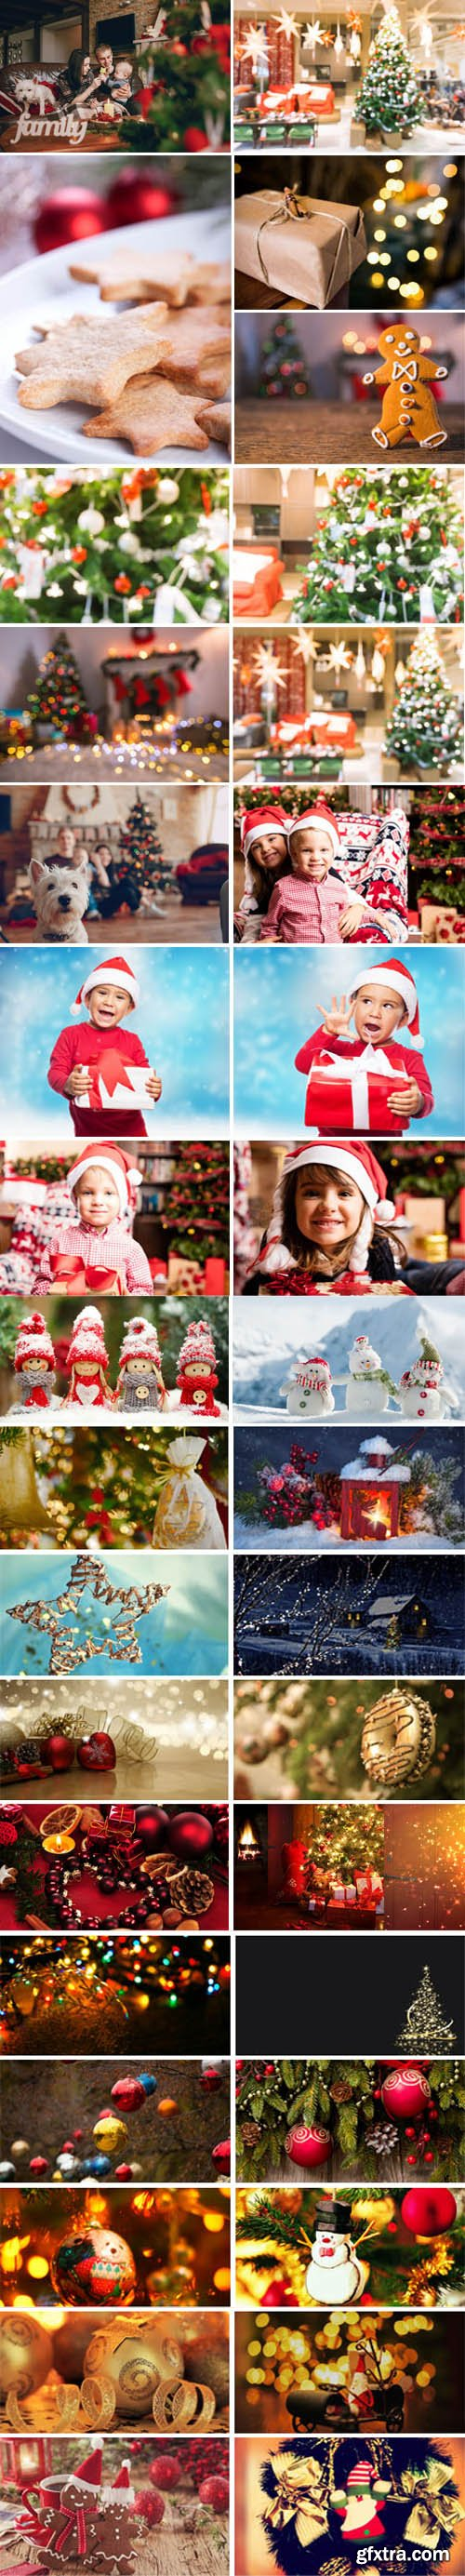 43 Christmas & New Year Photos & Wallpapers Collection 2